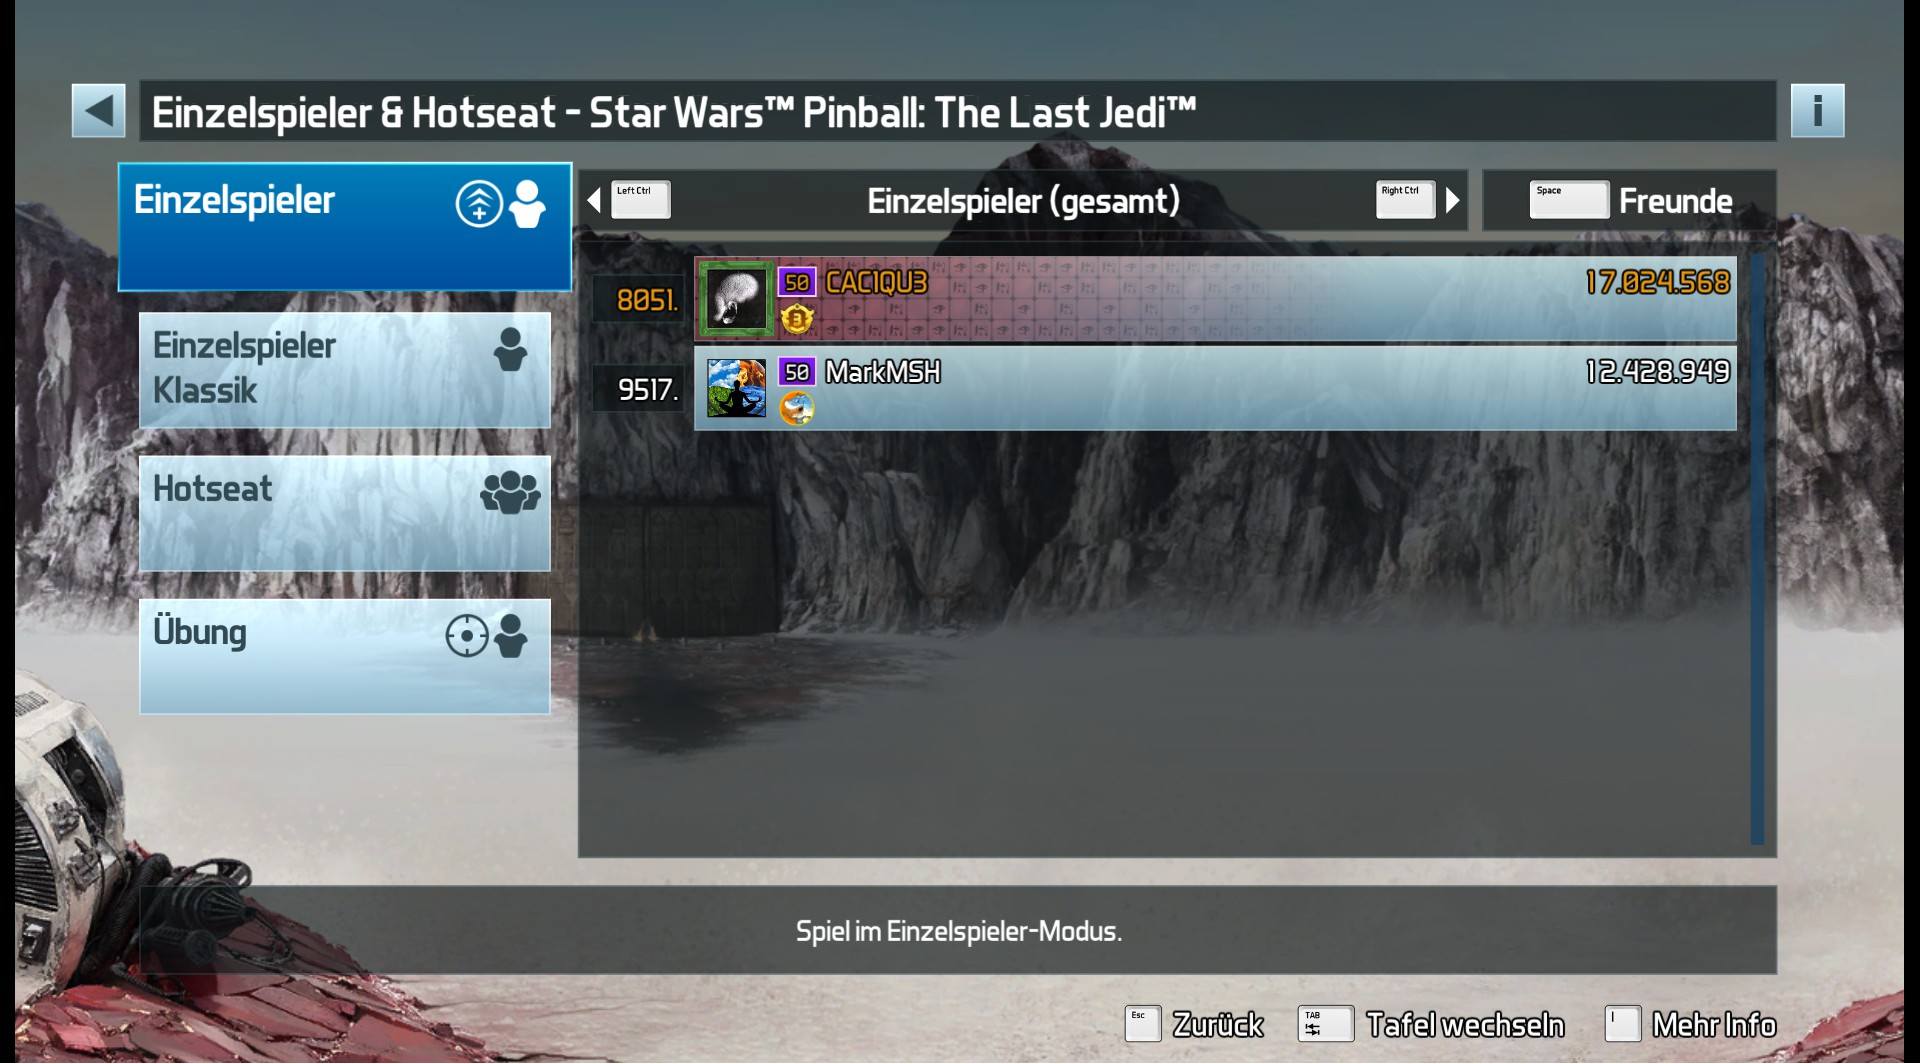 Pinball FX3: Star Wars Pinball: The Last Jedi 17,024,568 points